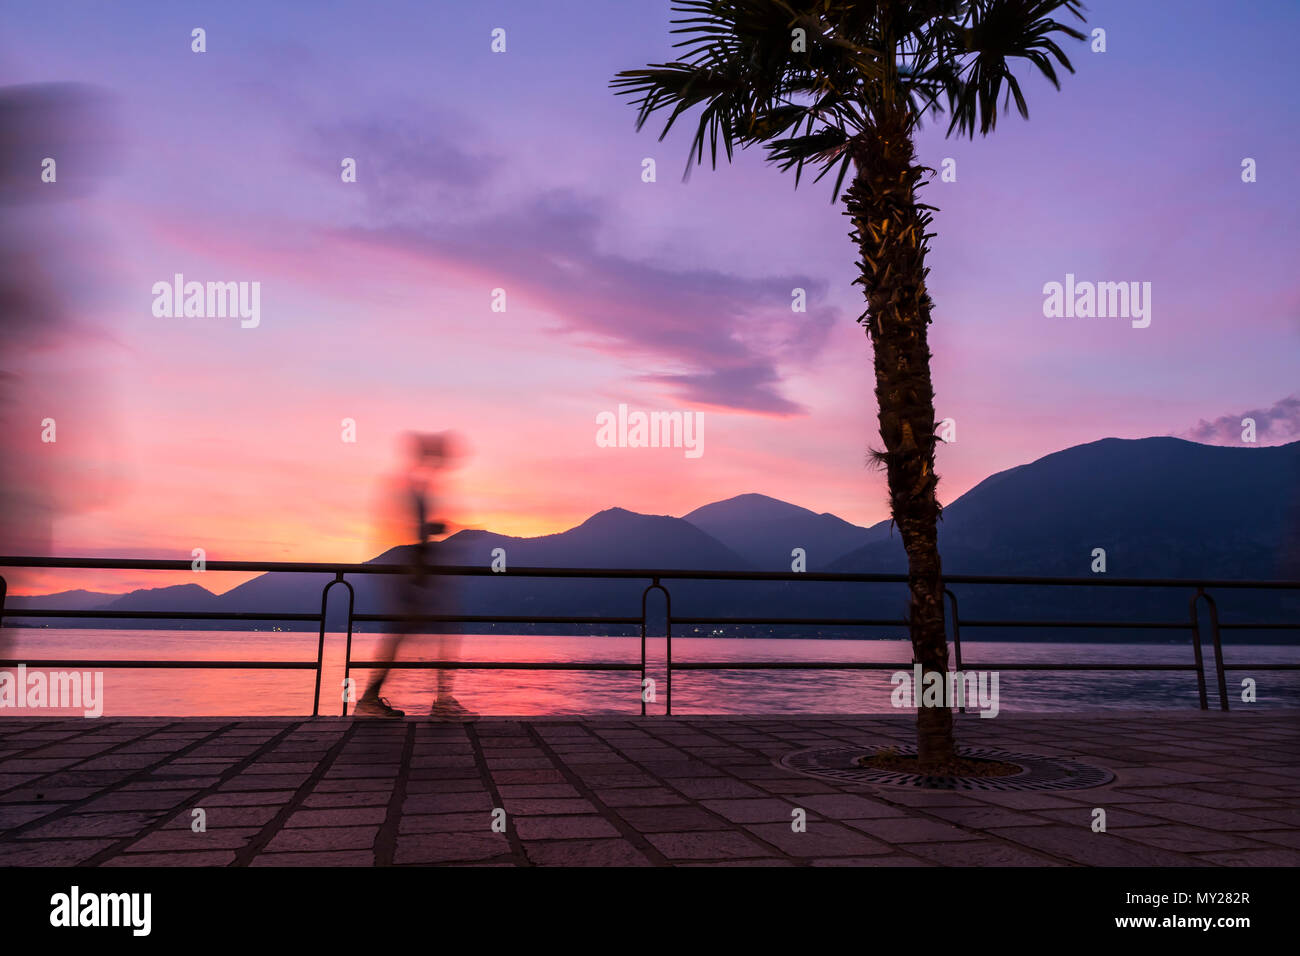 Beautiful foggy sunset at Iseo lake, Lombardy, Italy. Silhouettes of people walking on promenade street in Iseo city. Famous Italian resort - Stock Image